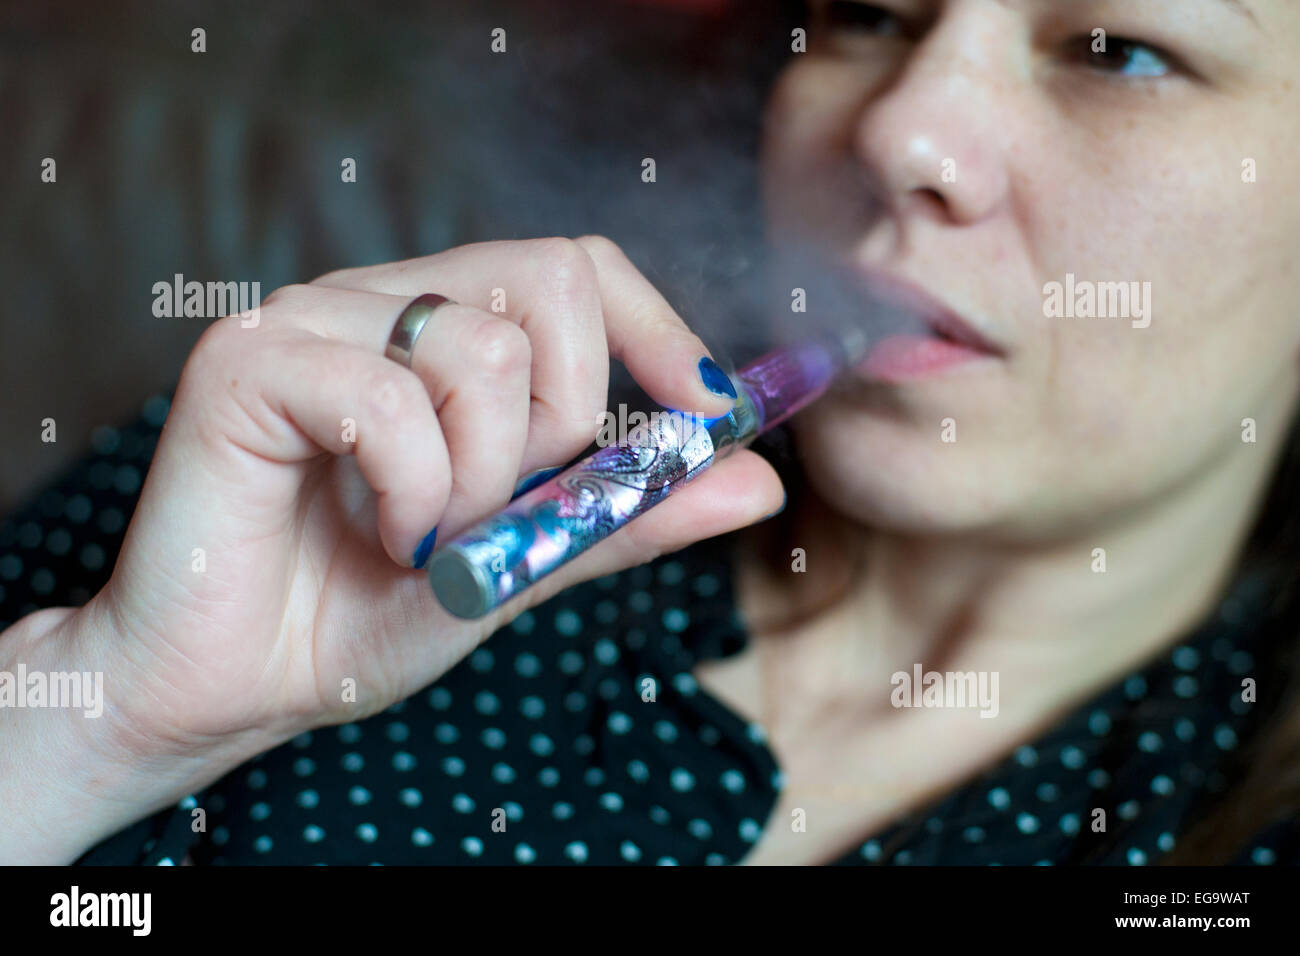 a woman relaxing smoking an e cigarette and blowing out vapour - Stock Image